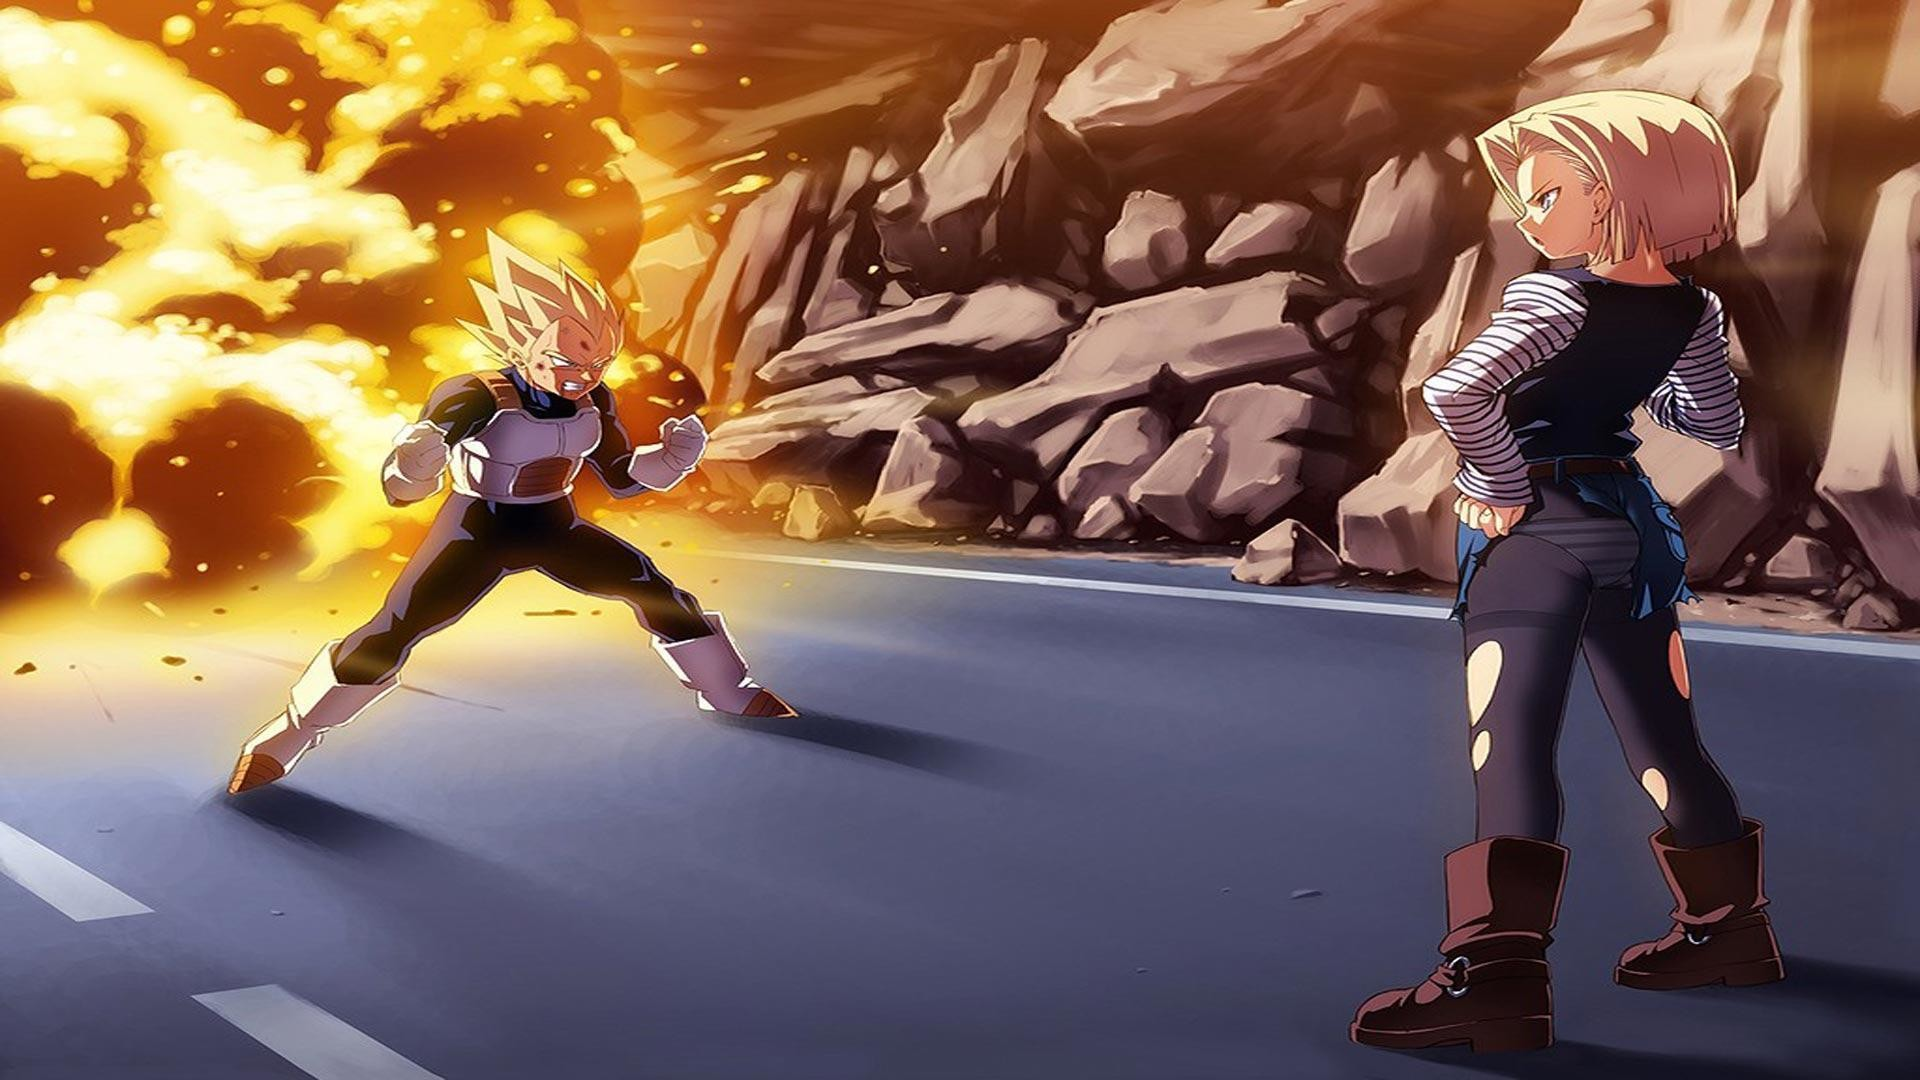 android 18 wallpapers 69 images